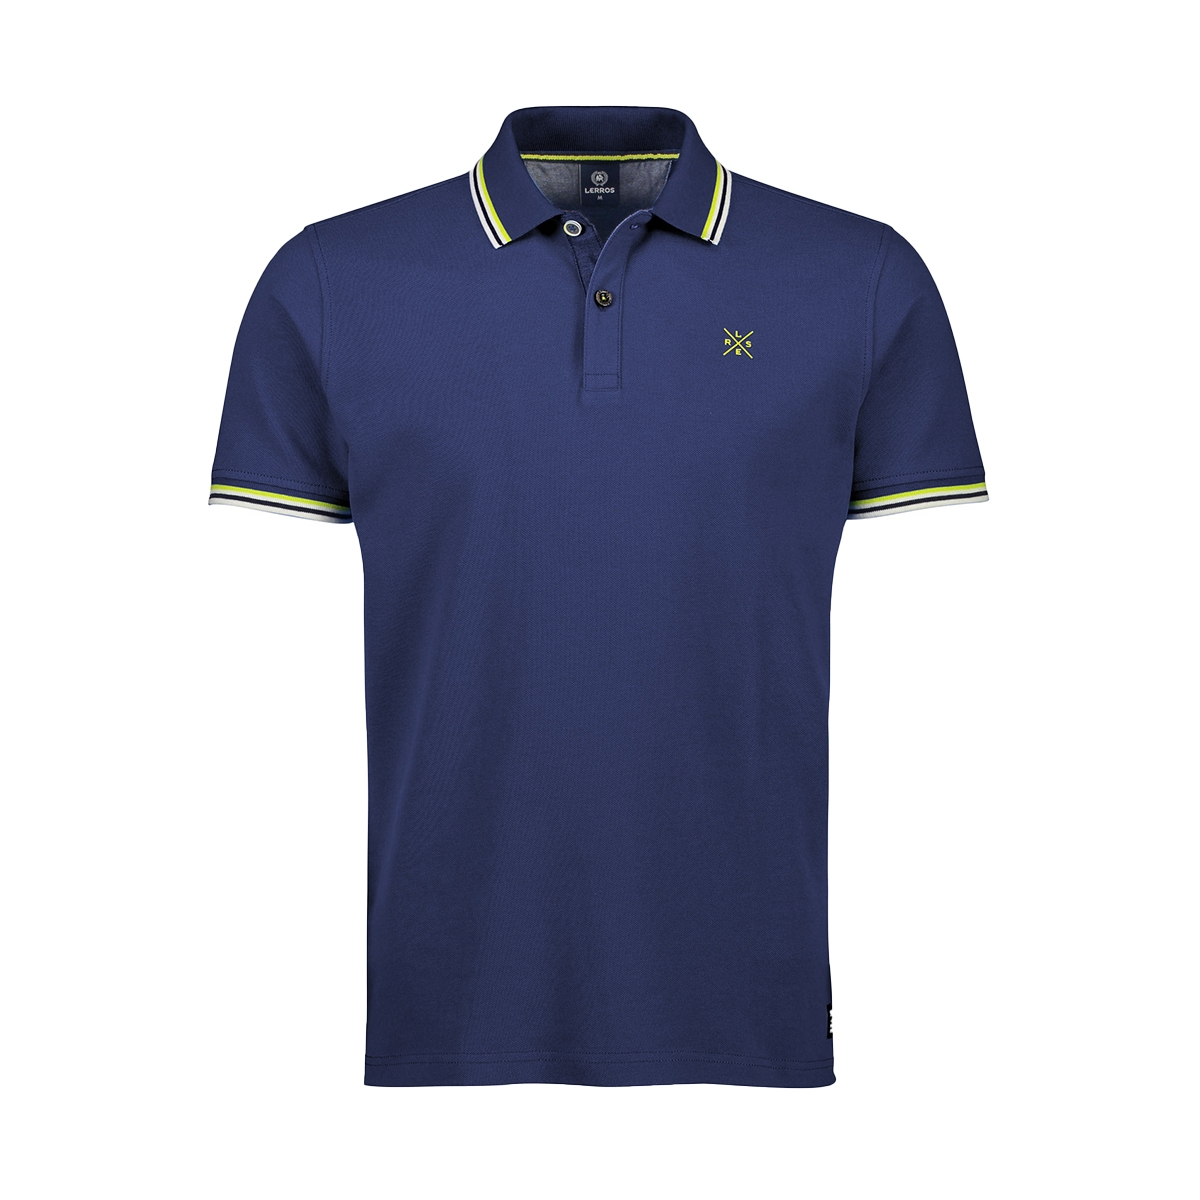 poloshirt met contrast details 2043209 lerros polo 474